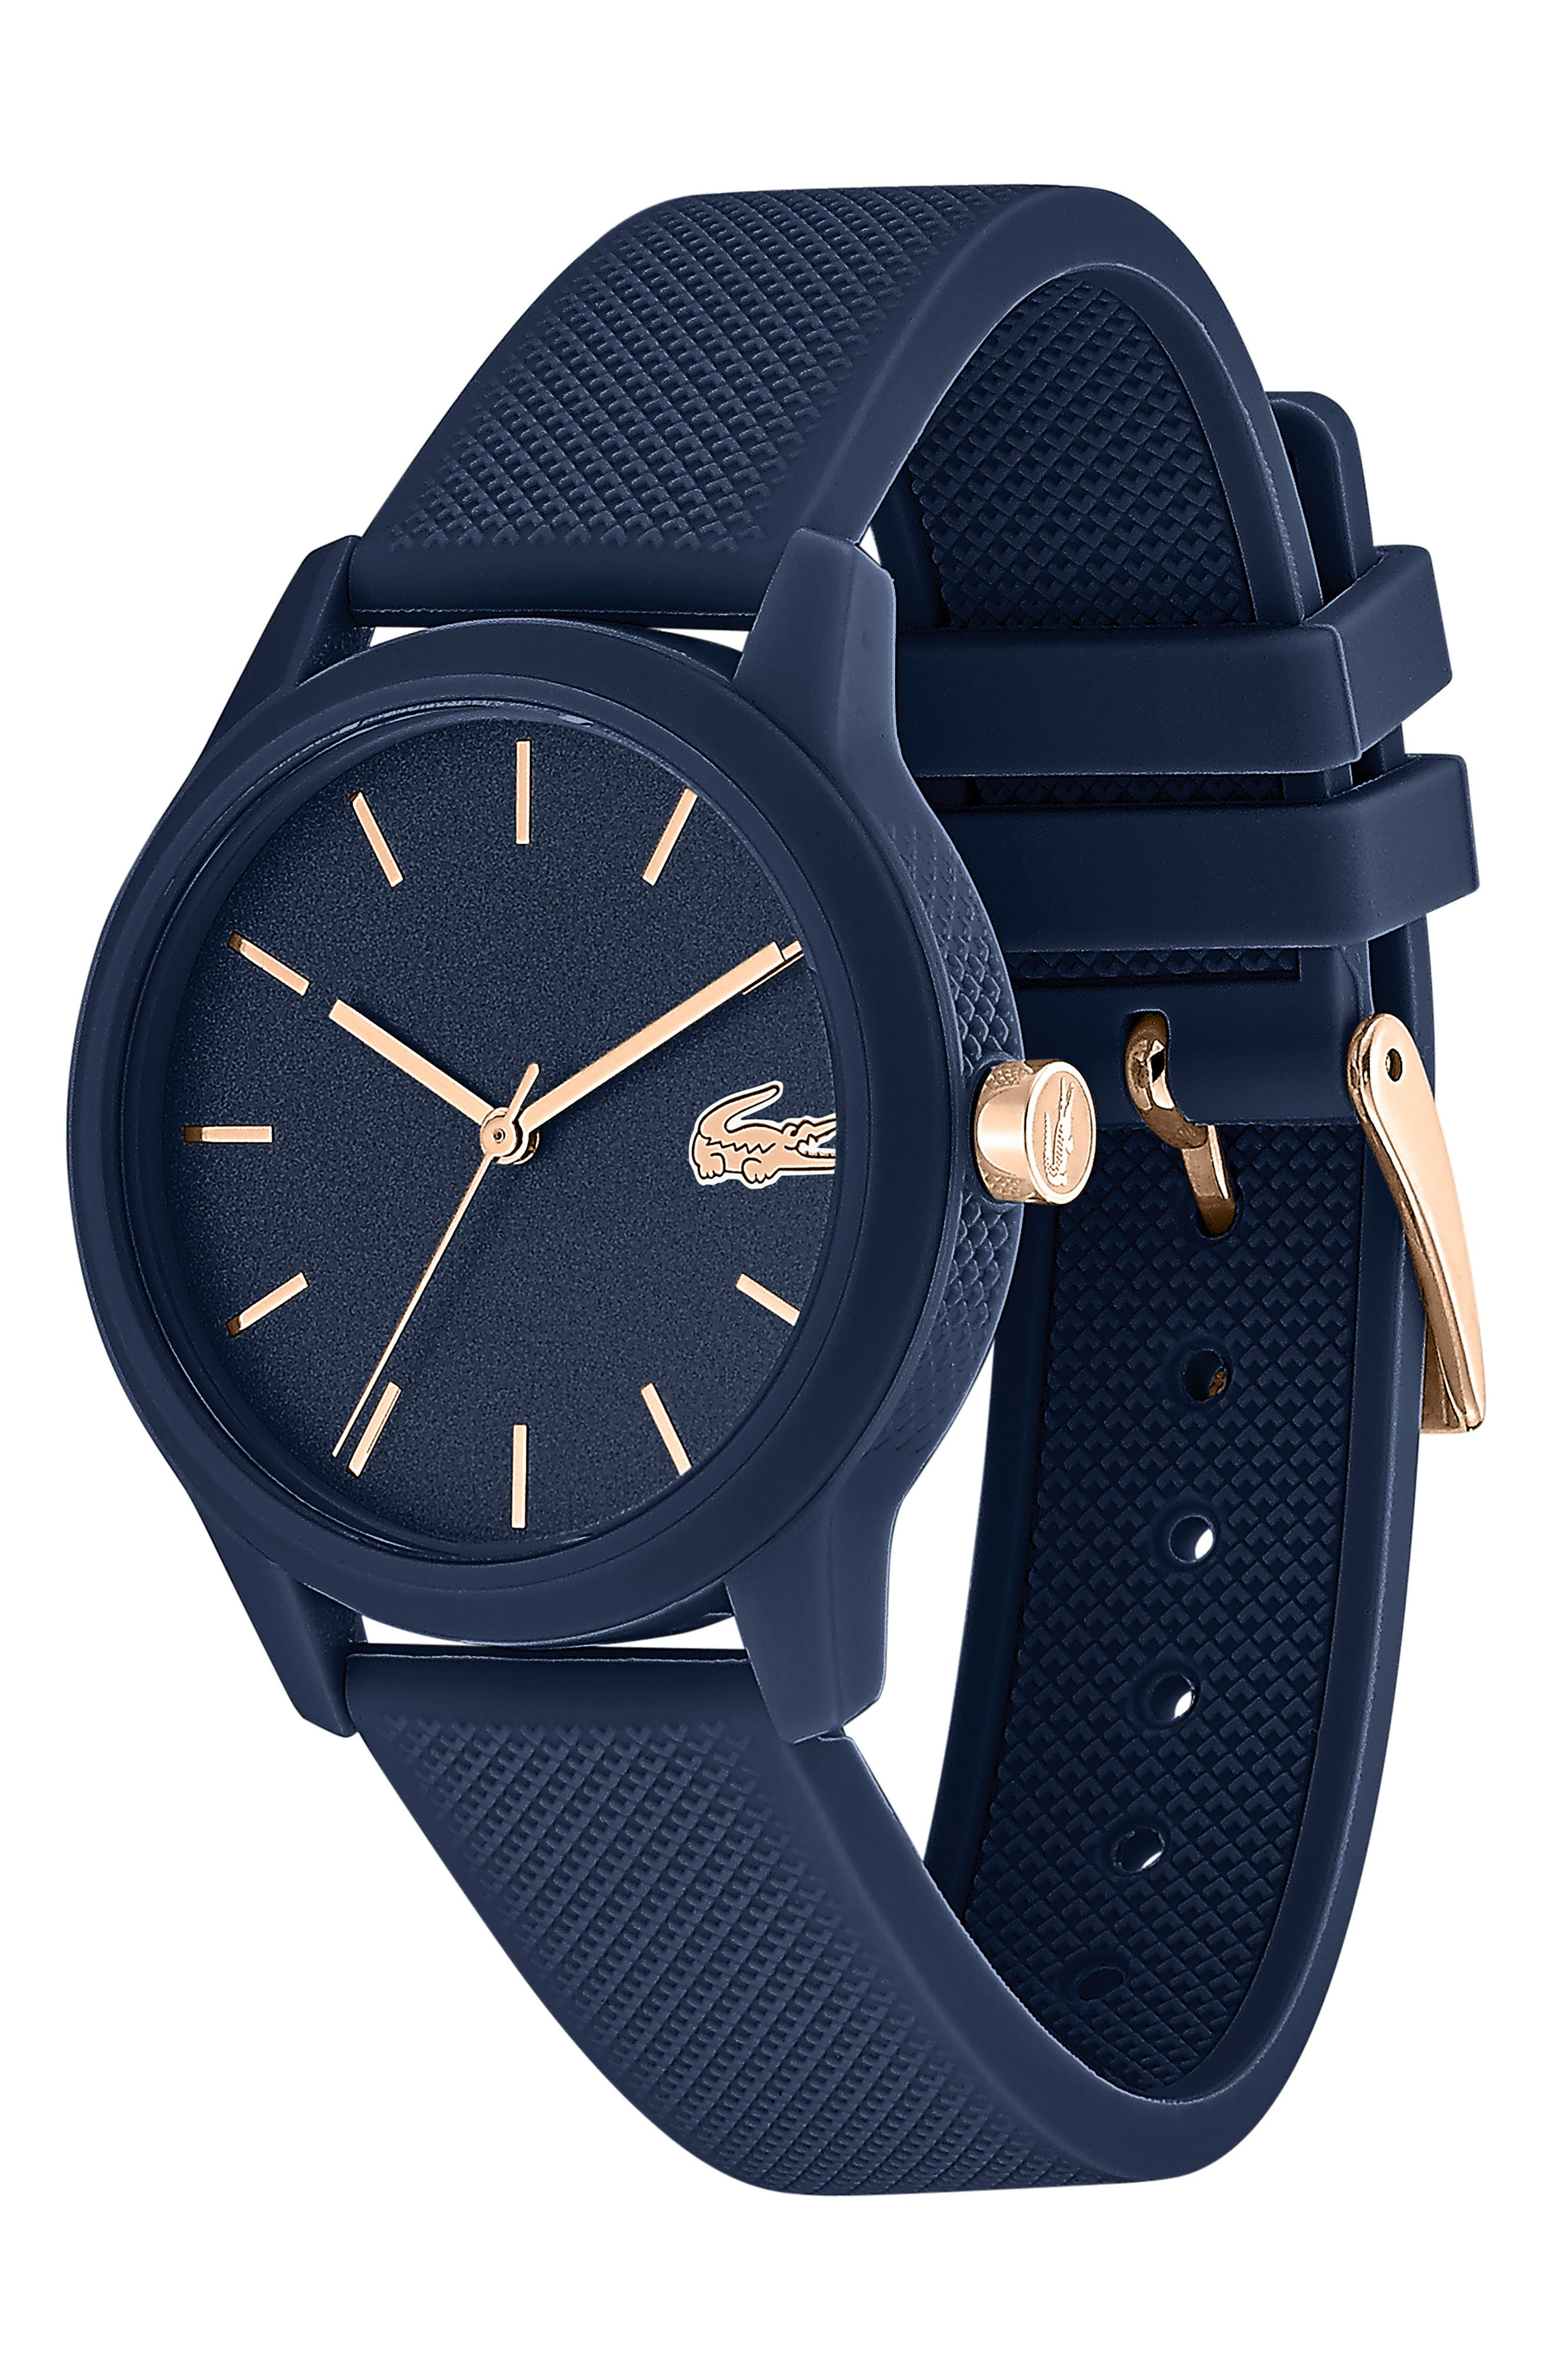 LACOSTE, 12.12 Silicone Strap Watch, 36mm, Alternate thumbnail 3, color, BLUE